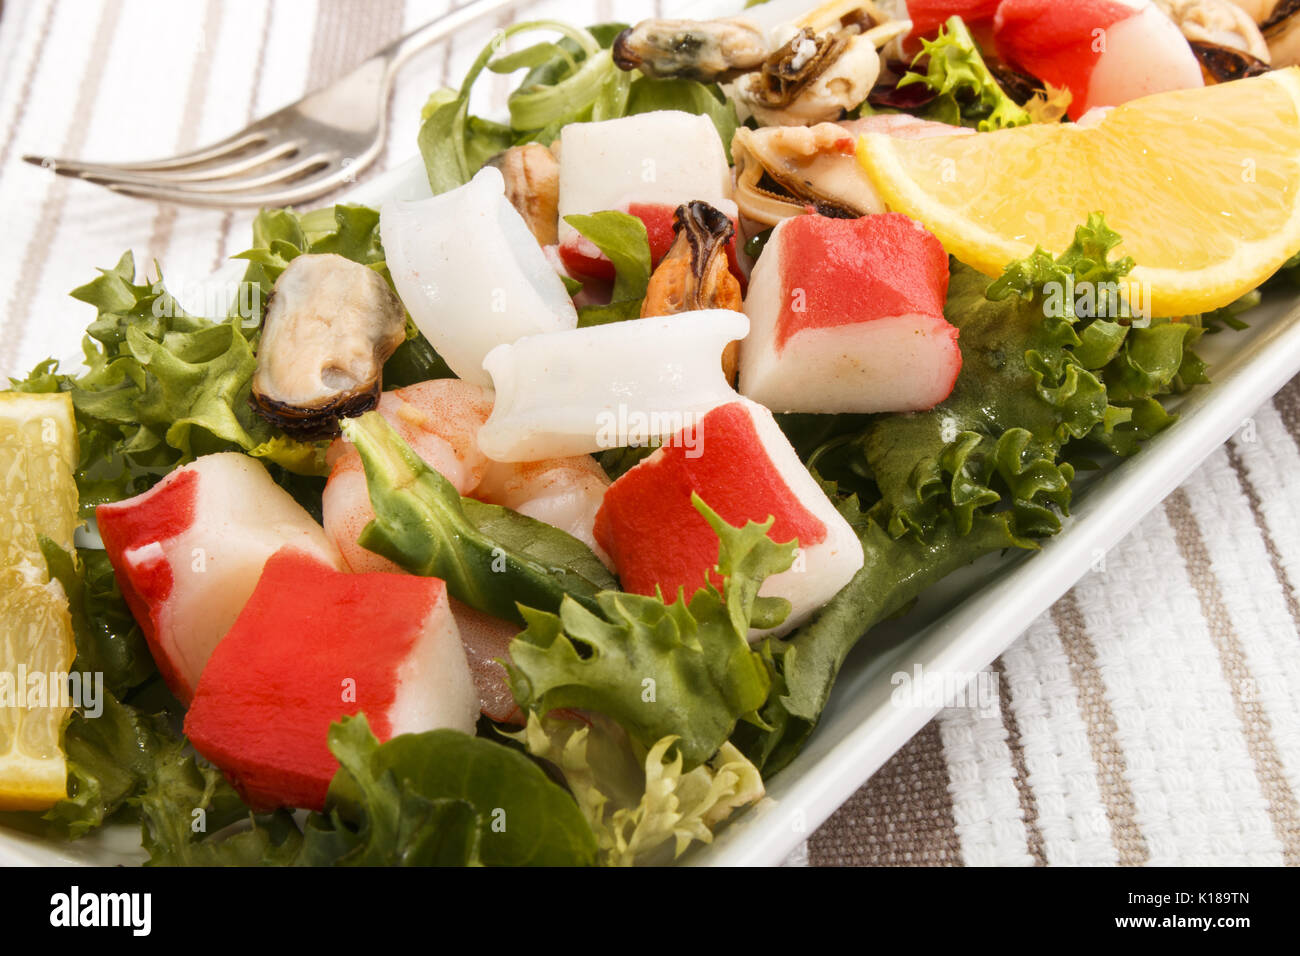 cold fresh seefood slalad, fine dinning with healthy food - Stock Image